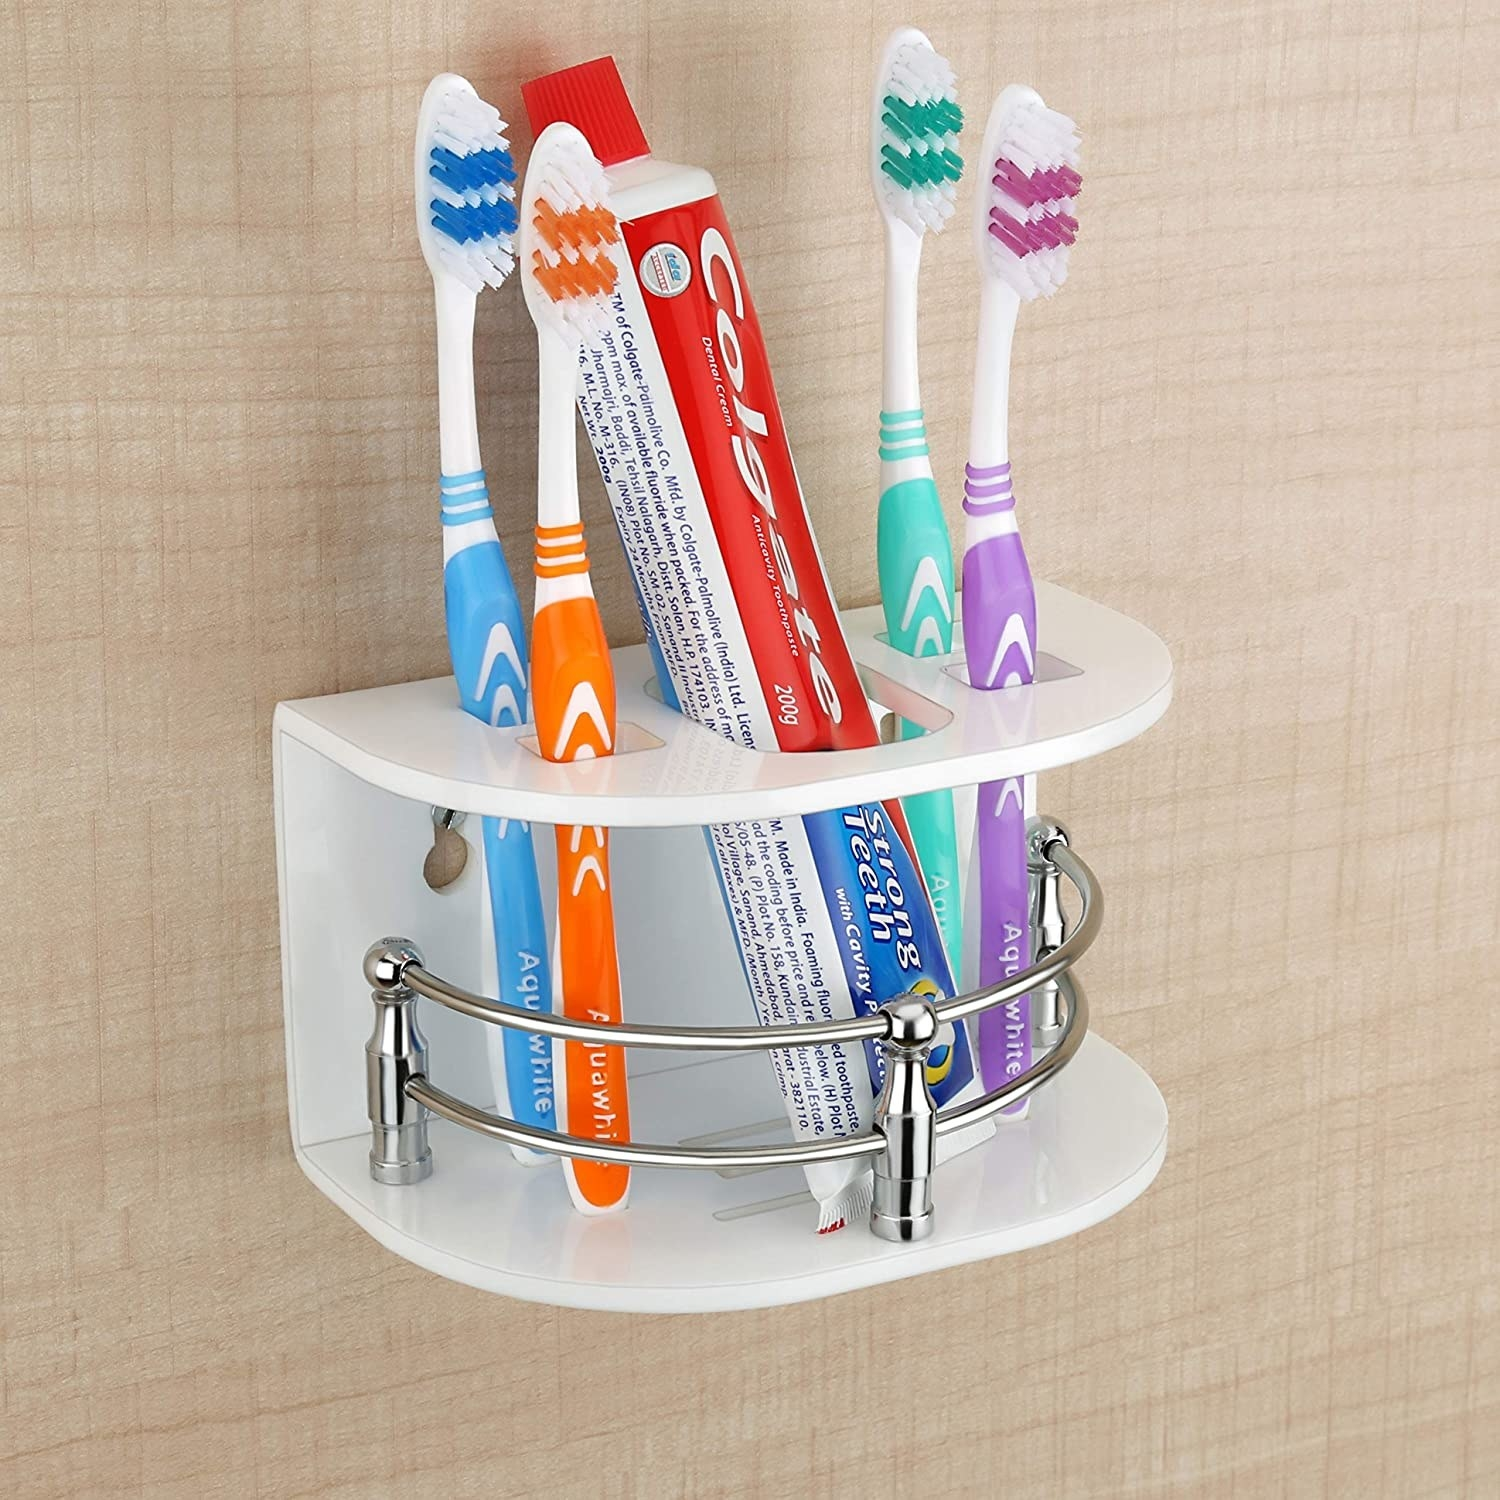 A wall-mounted organiser with toothbrushes and toothpaste in it